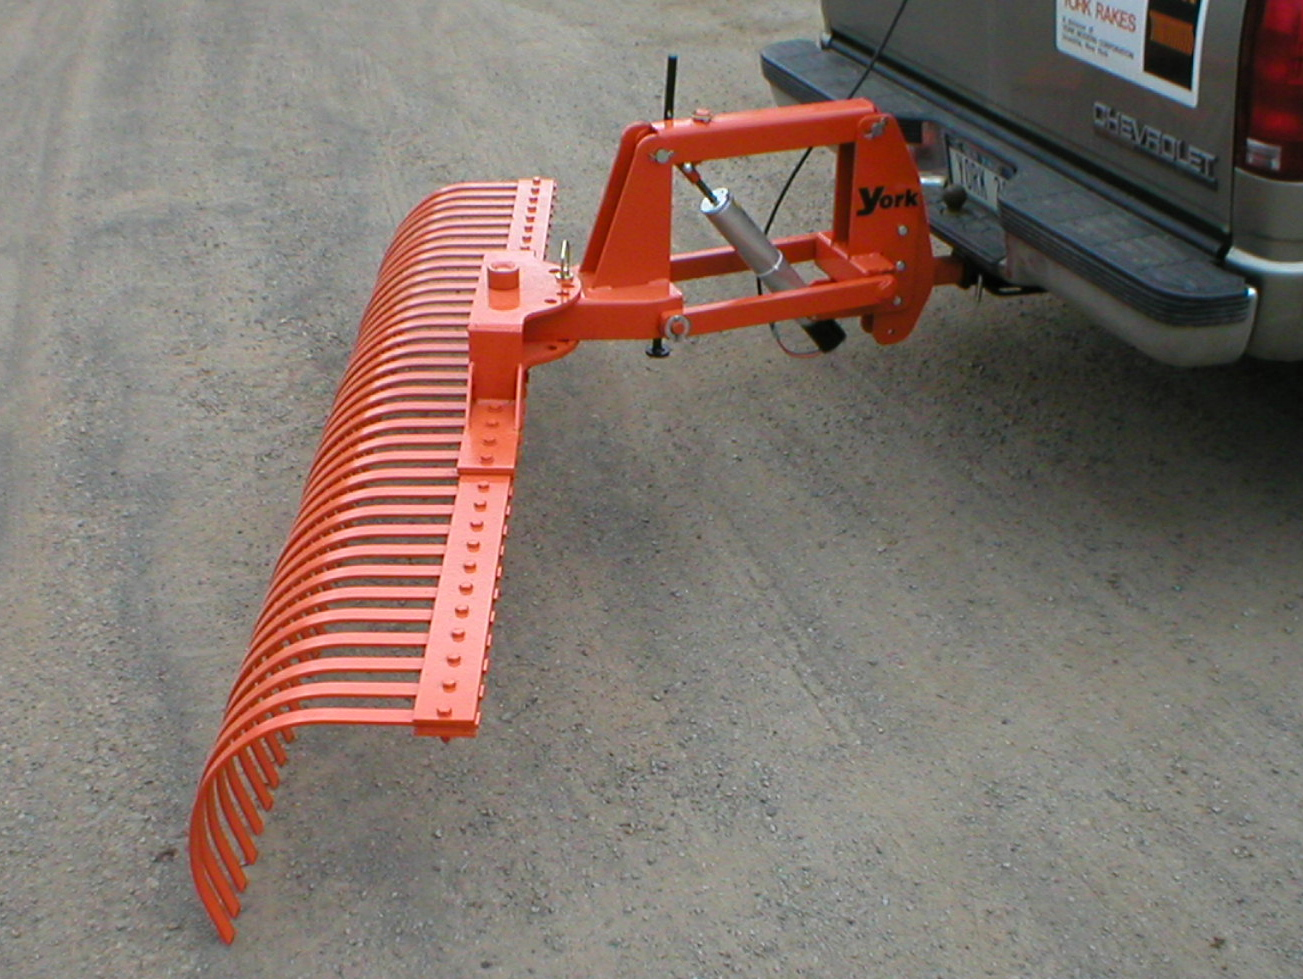 Pickup Or SUV Mounted Landscape Rake With Electric Height adjustment, Angles Either Left Or Right